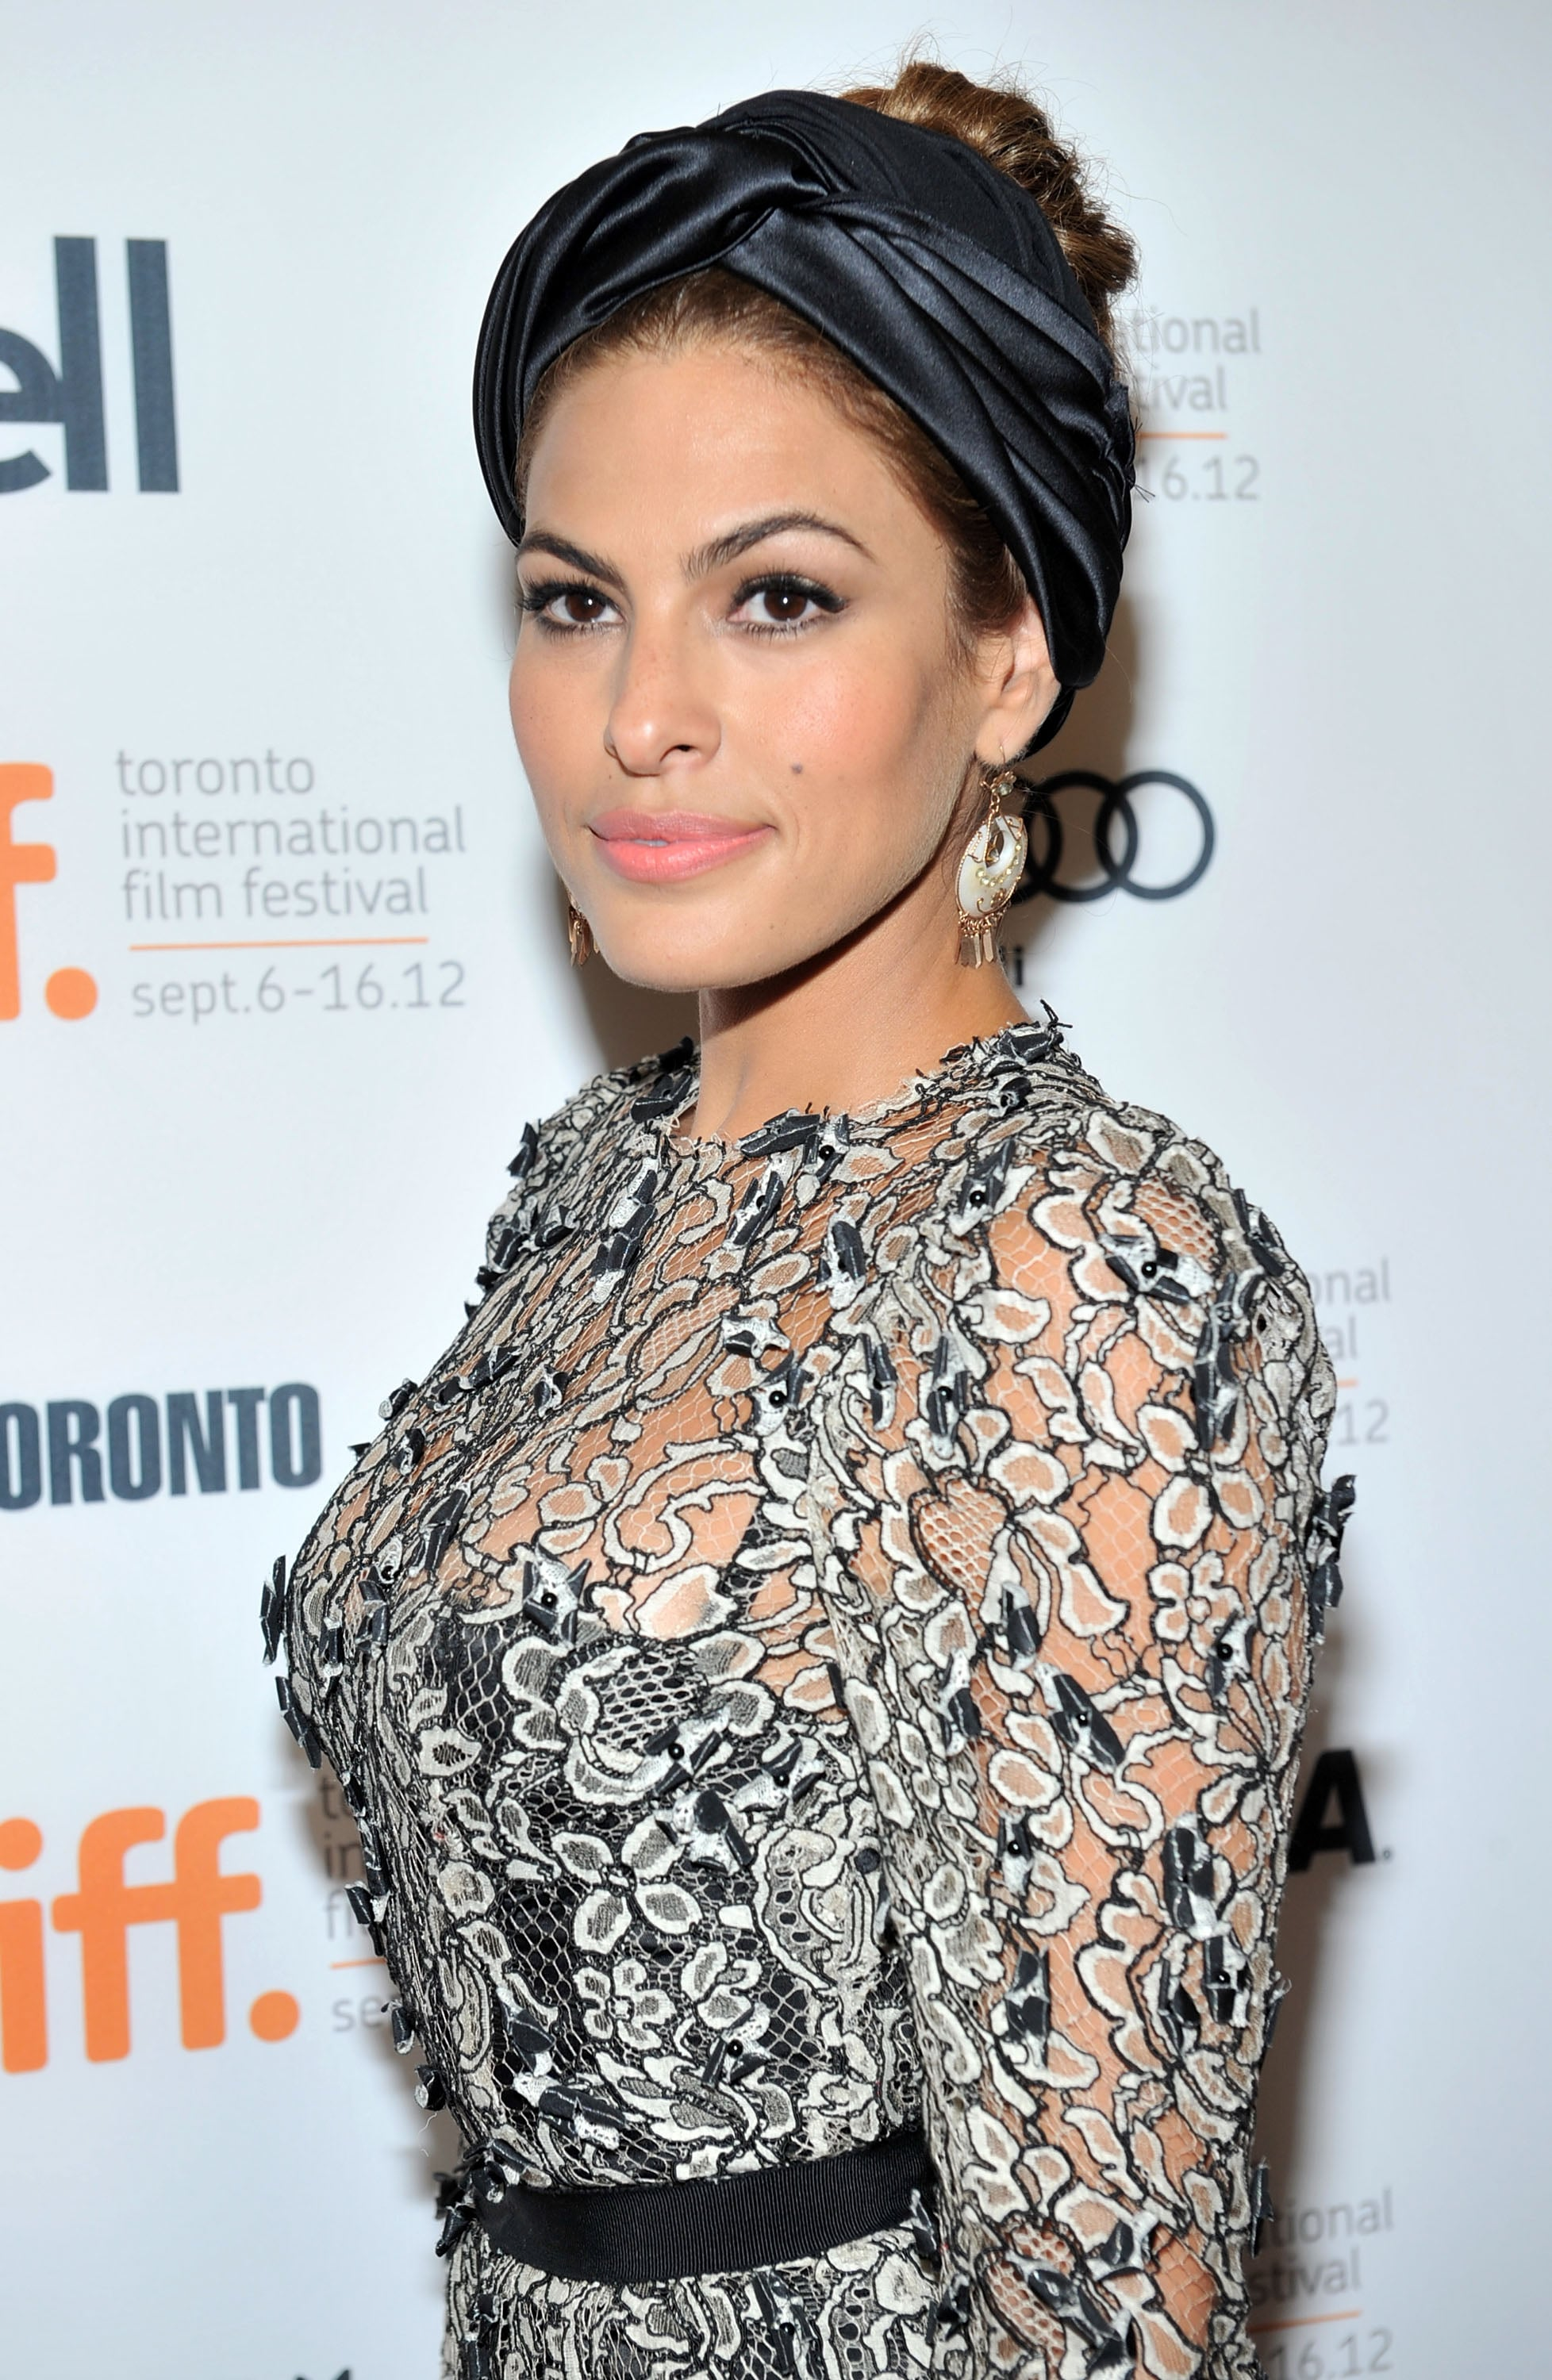 TORONTO, ON - SEPTEMBER 07: Actress Eva Mendes attends